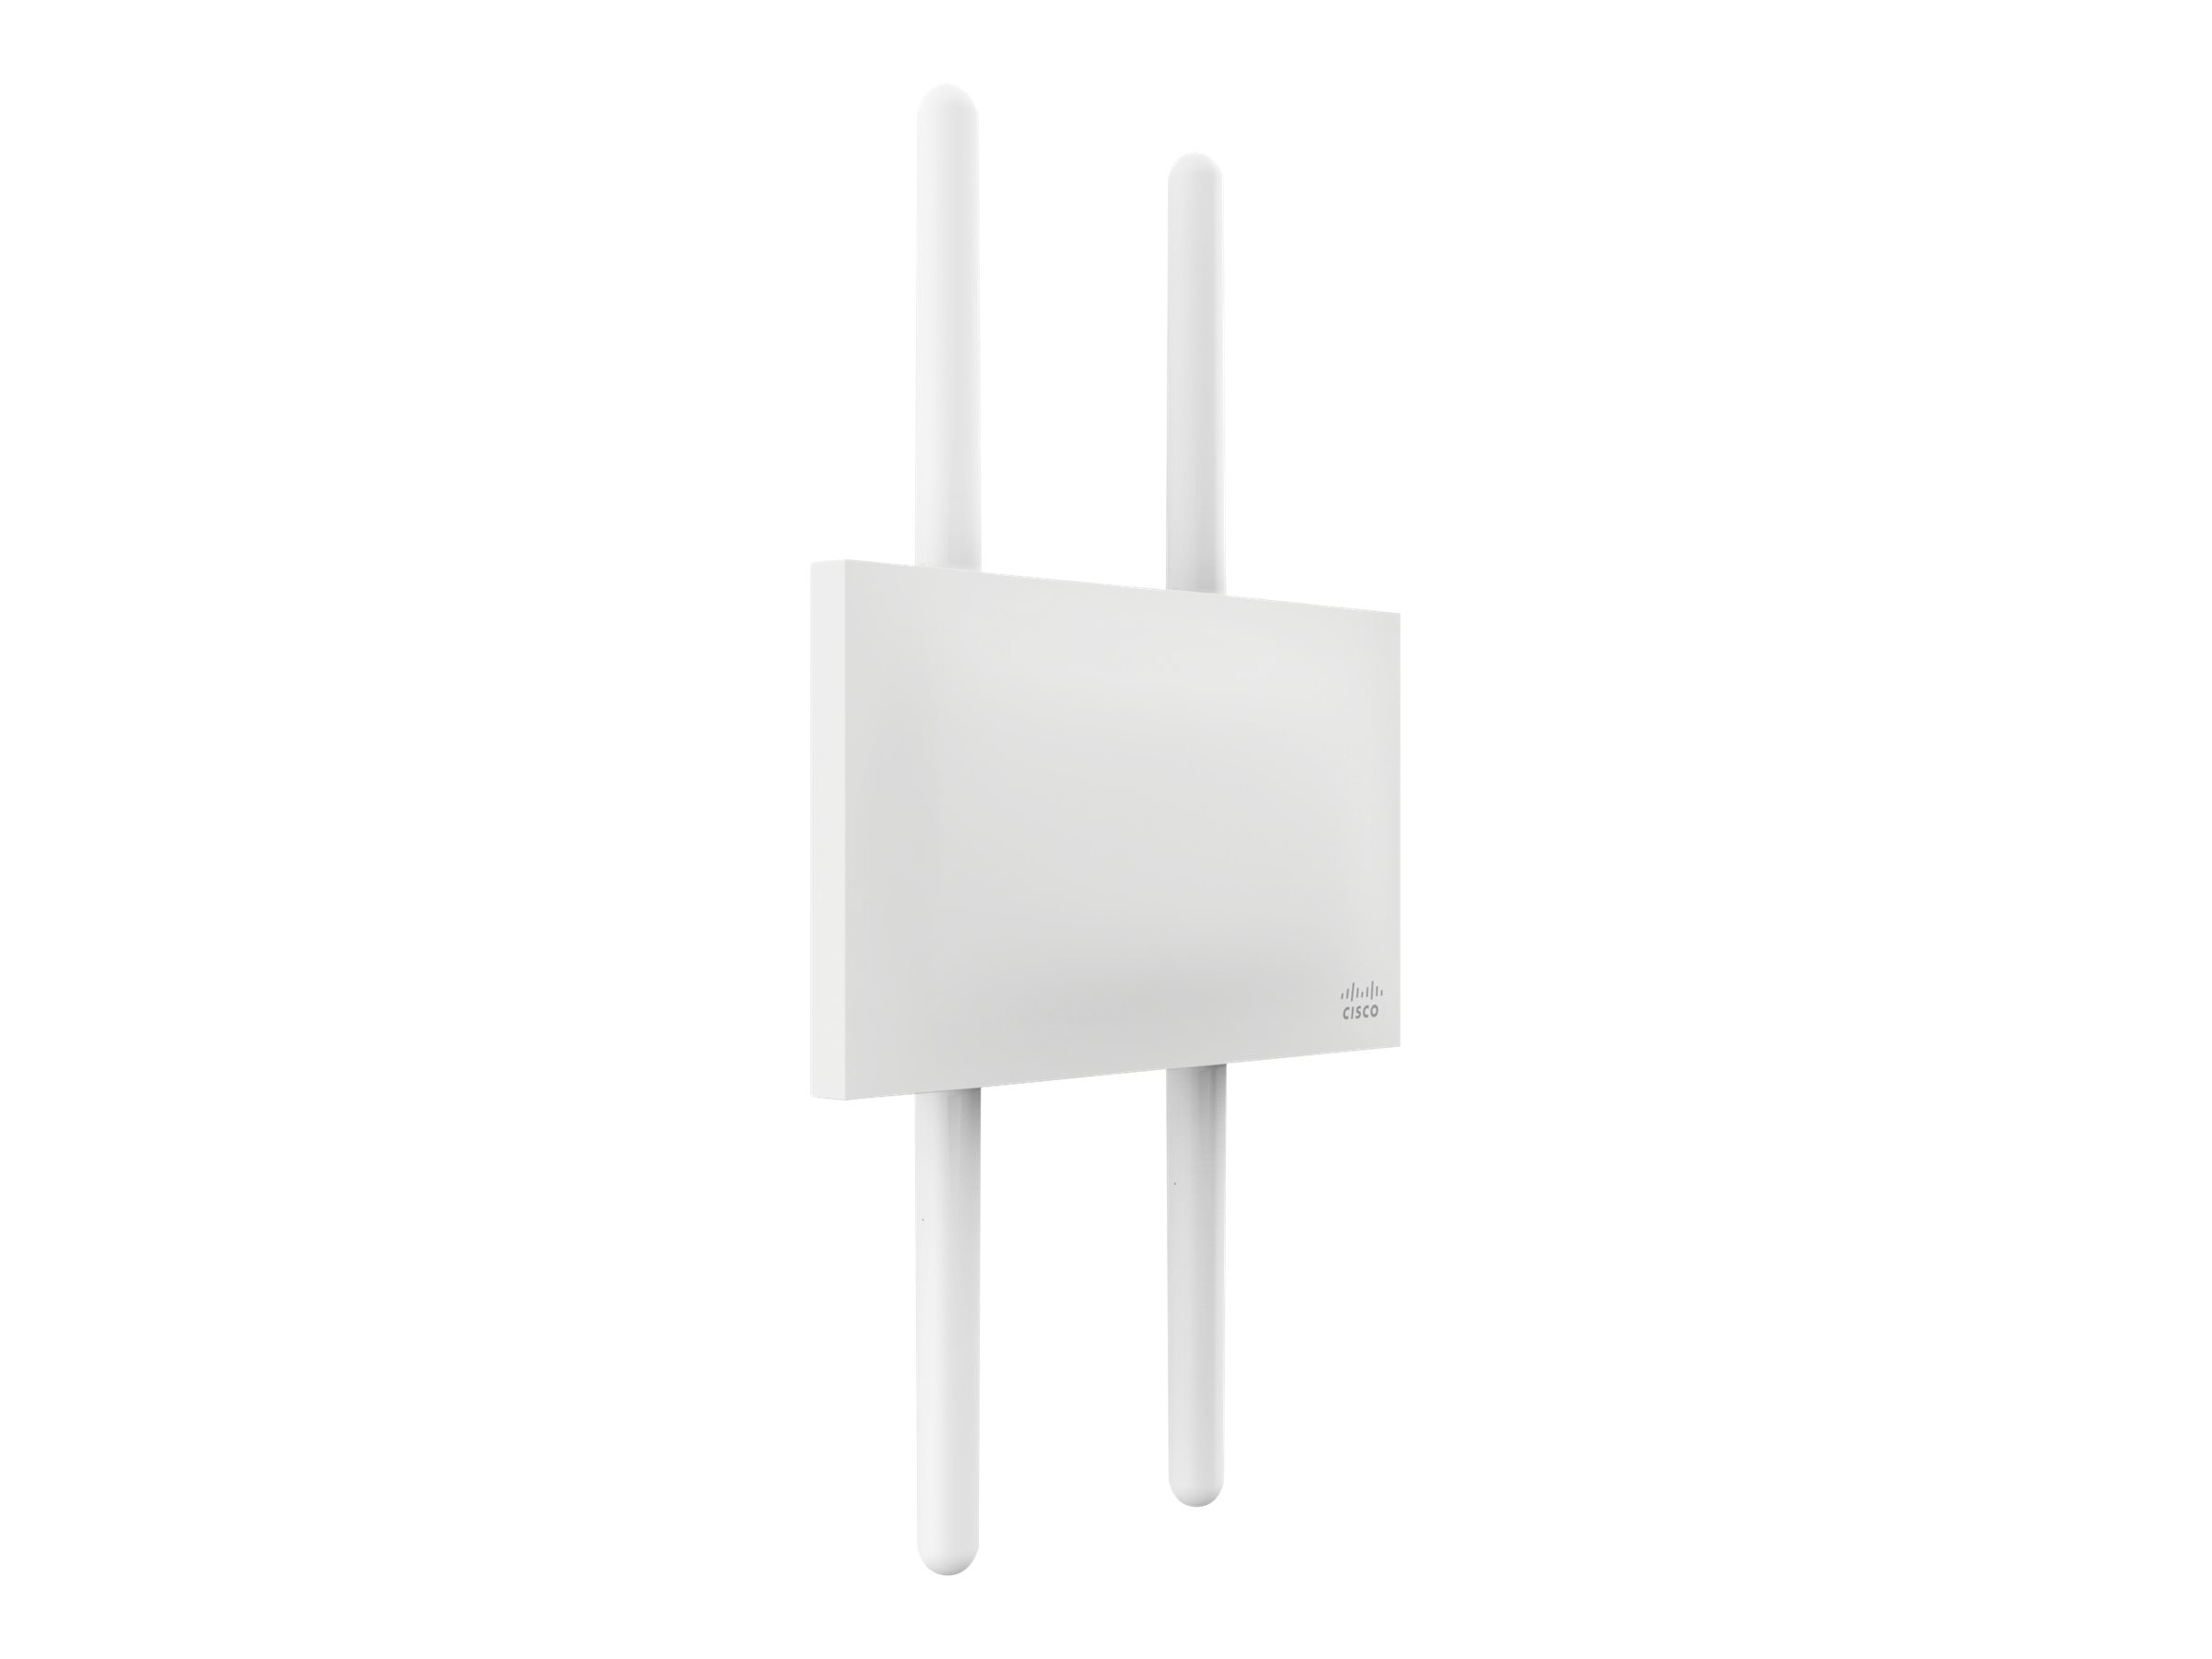 Cisco Meraki MR74 Cloud Managed - Funkbasisstation - Bluetooth 4.0, 802.11ac Wave 2 - Bluetooth, Wi-Fi 5 - 2.4 GHz, 5 GHz